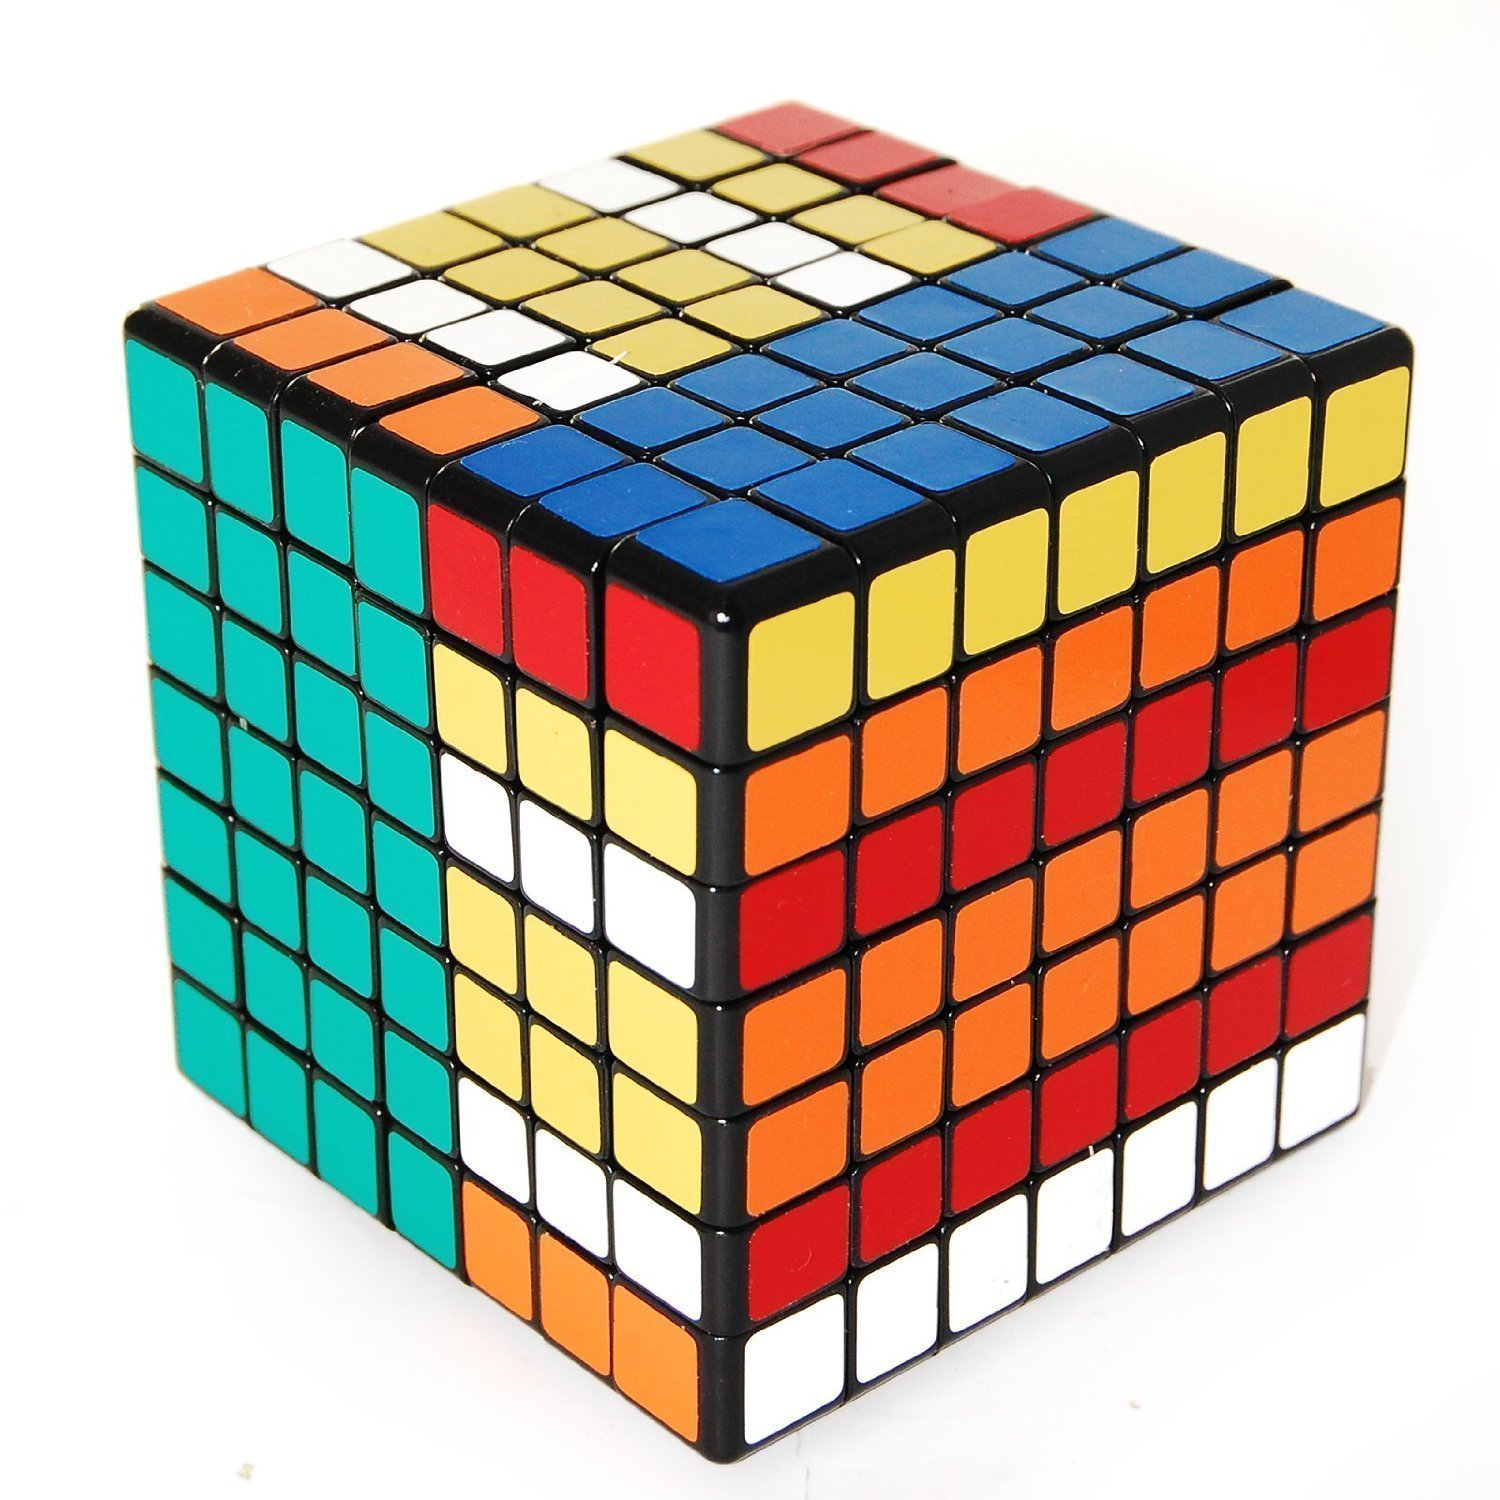 7x7 rubik s cube didn t know i wanted that